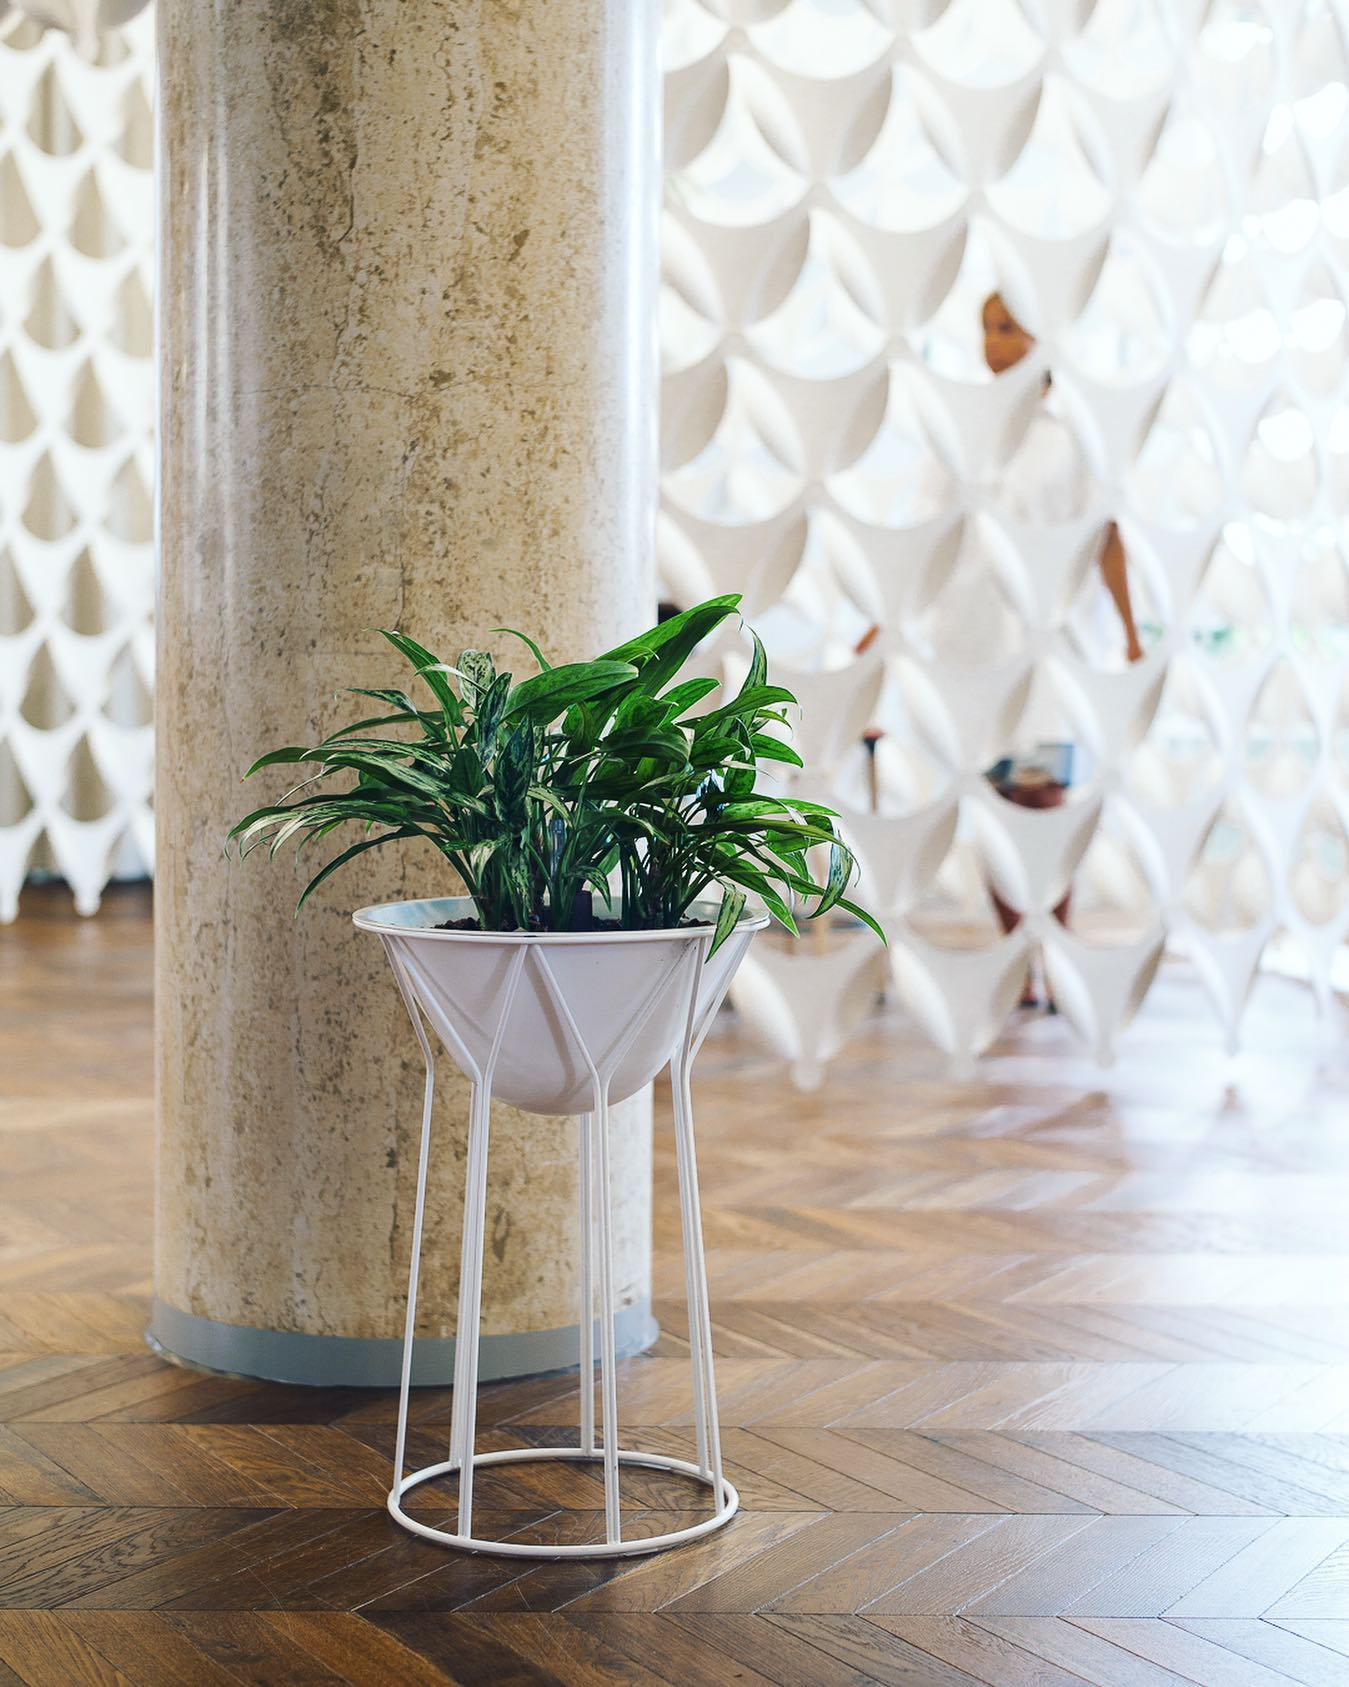 Offect O2ASIS Circus Planter Stand